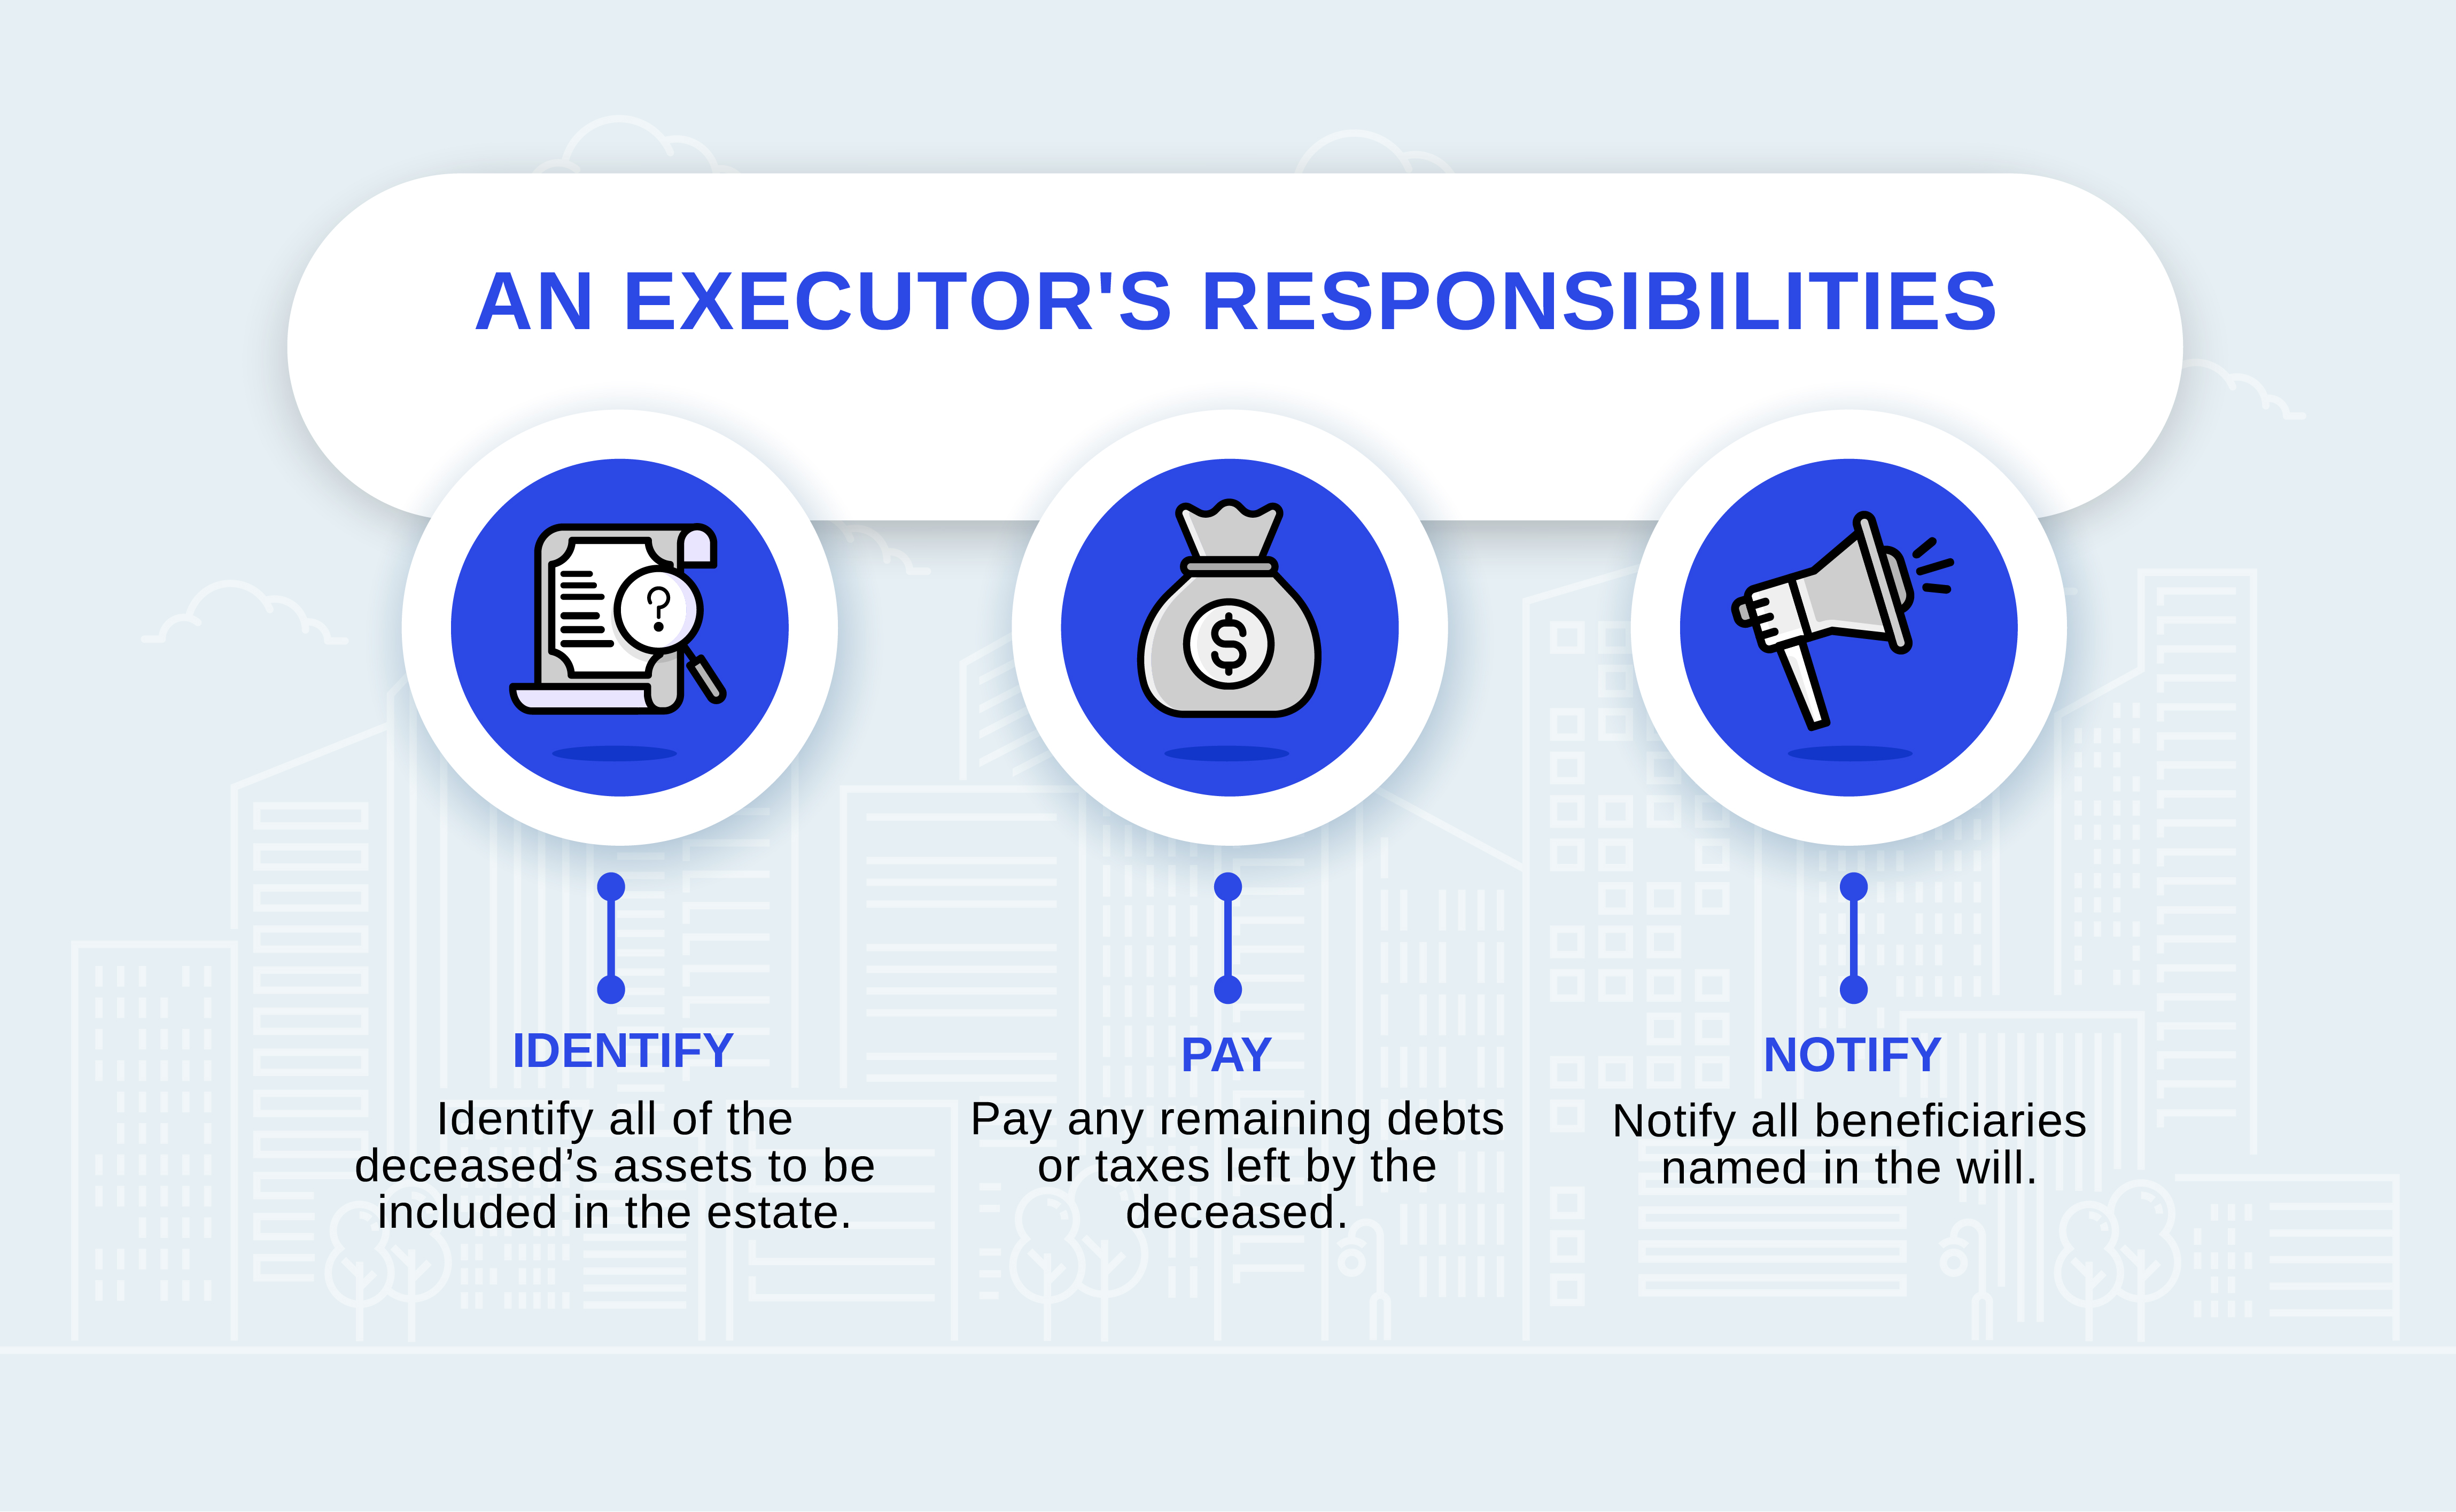 An executor's responsibilities include identifying all assets, paying remaining debts and taxes, and notifying all beneficiaries.